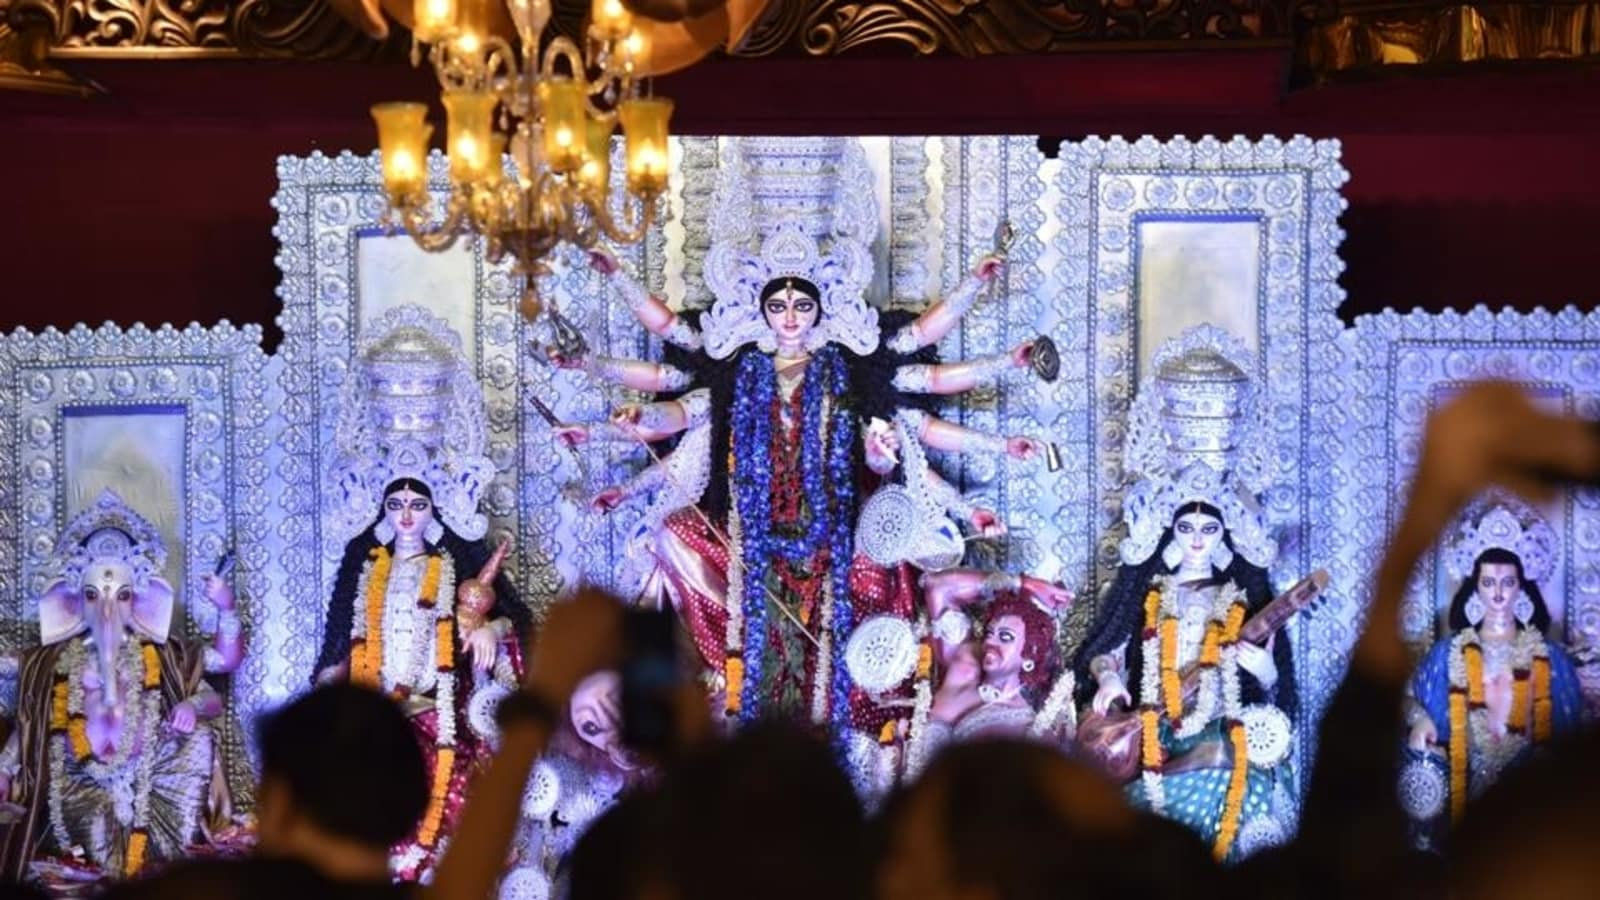 Bengal relaxes night curfew during Durga Puja, extends Covid-19 norms till October 30